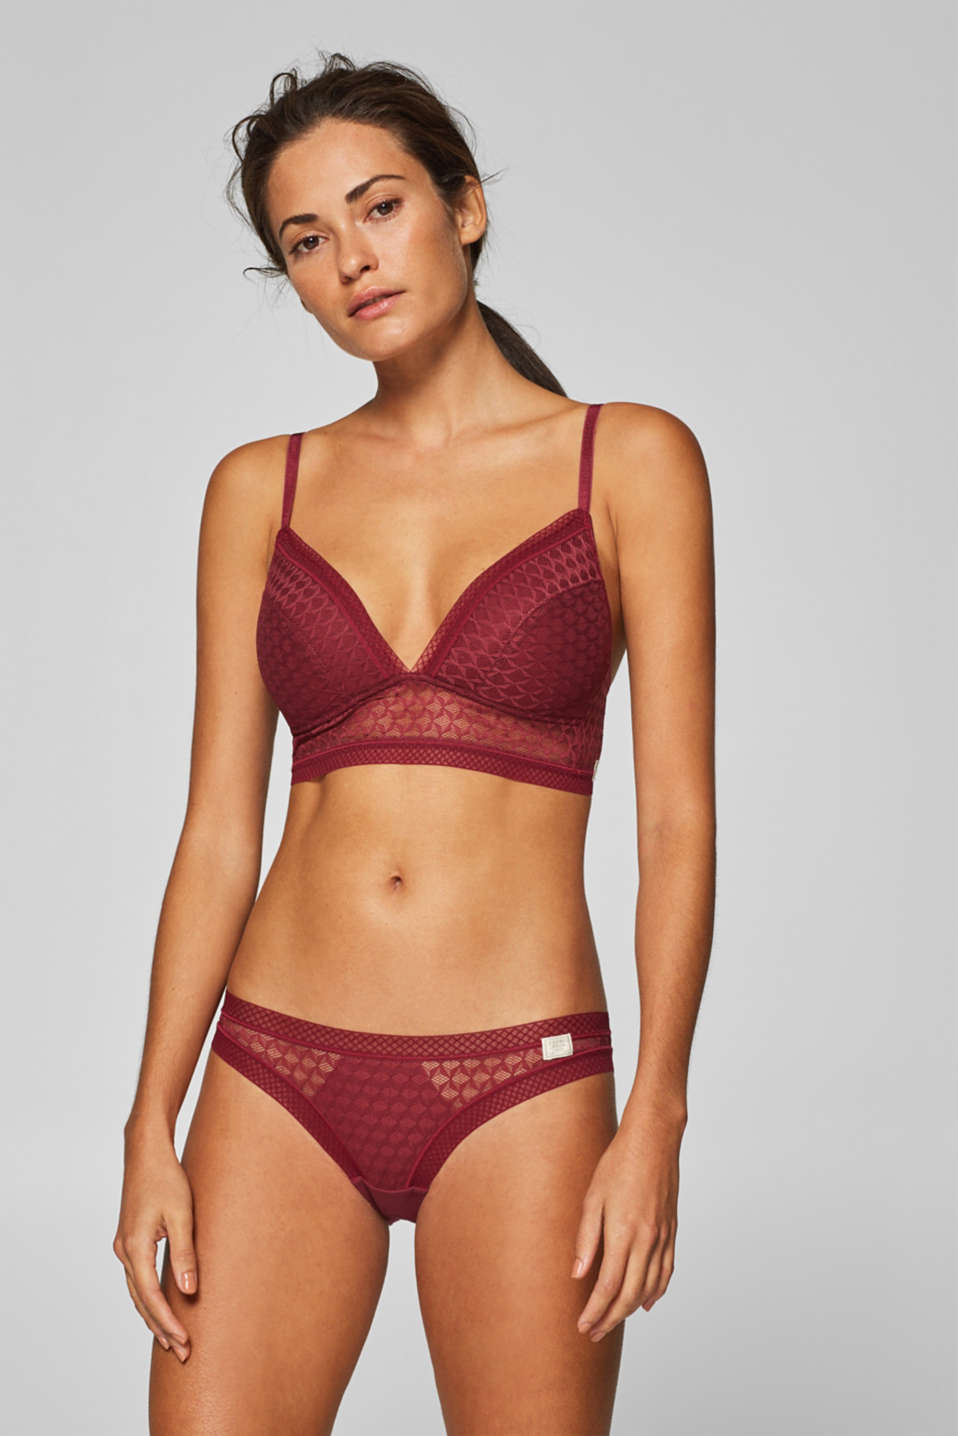 Esprit - Padded, wireless bra made of geometric mesh